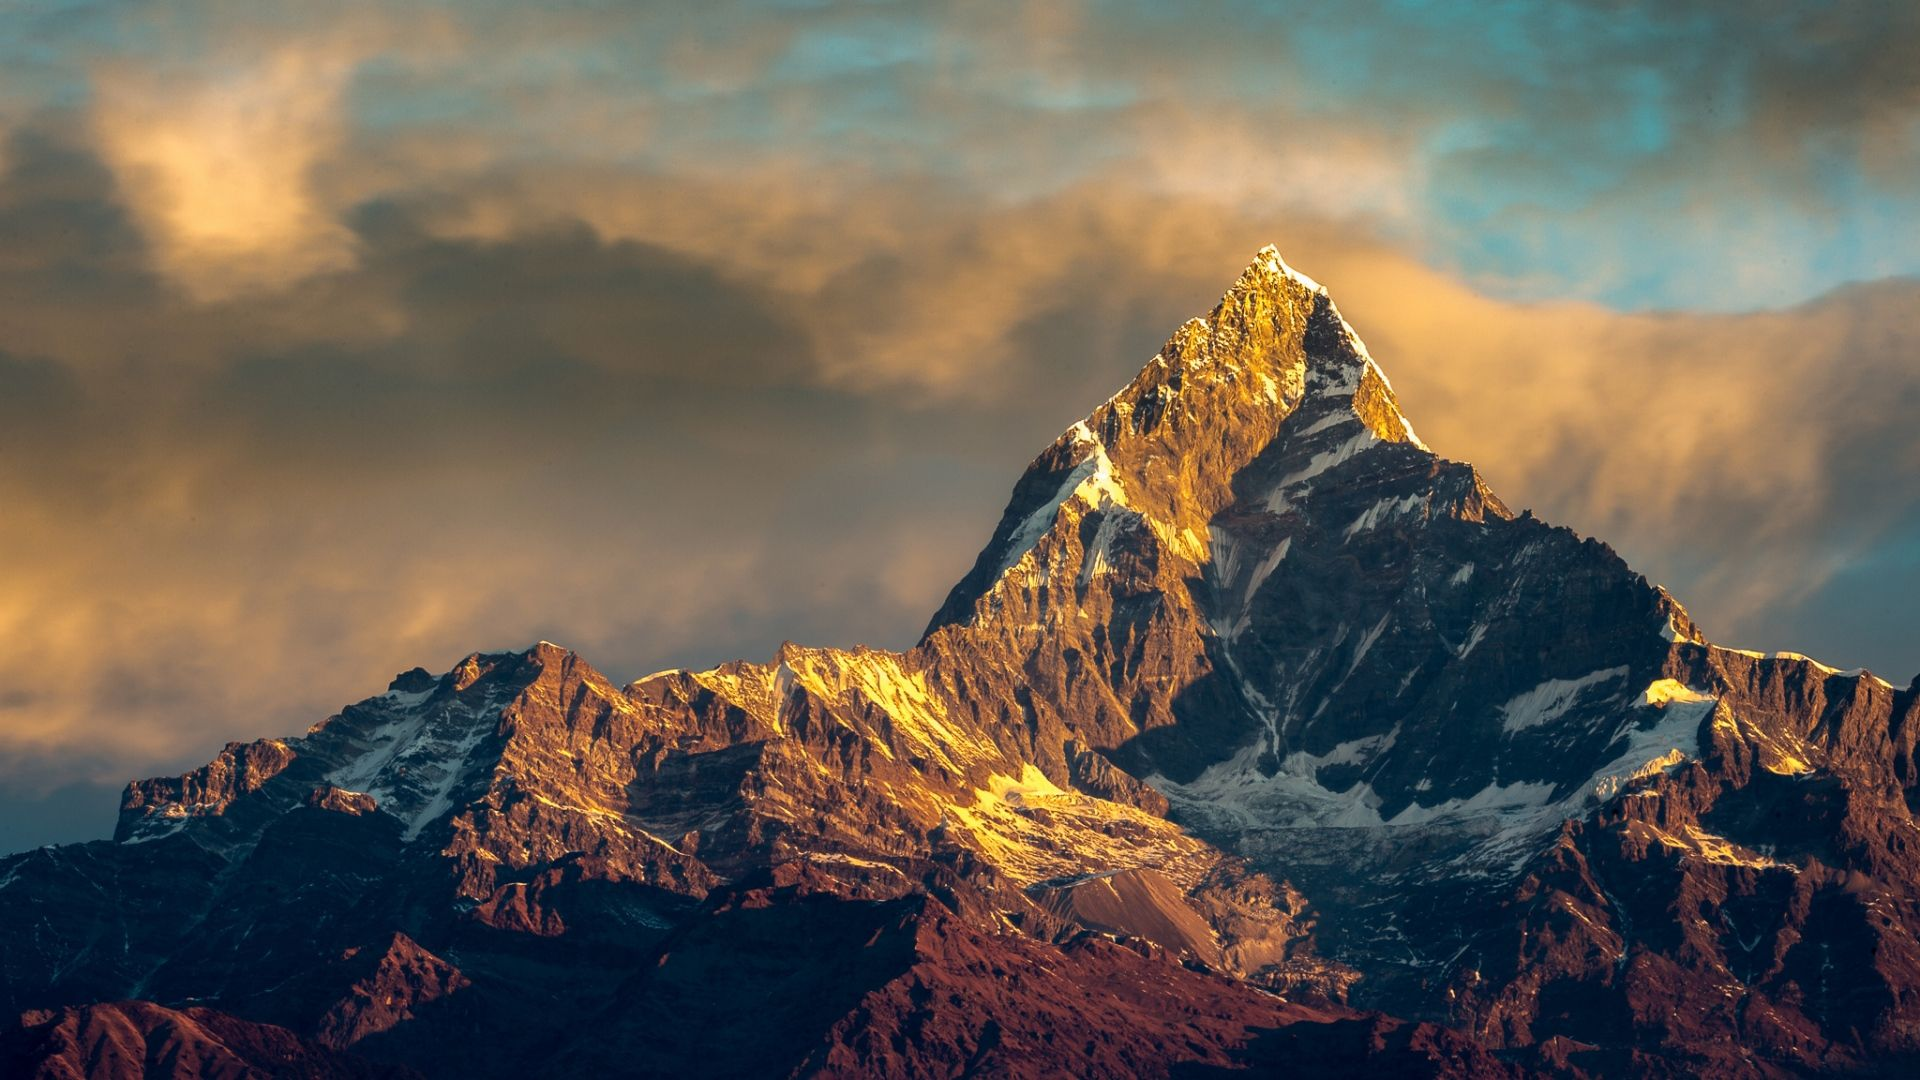 Pin By None On Hd Wallpaper Annapurna Base Camp Mountain